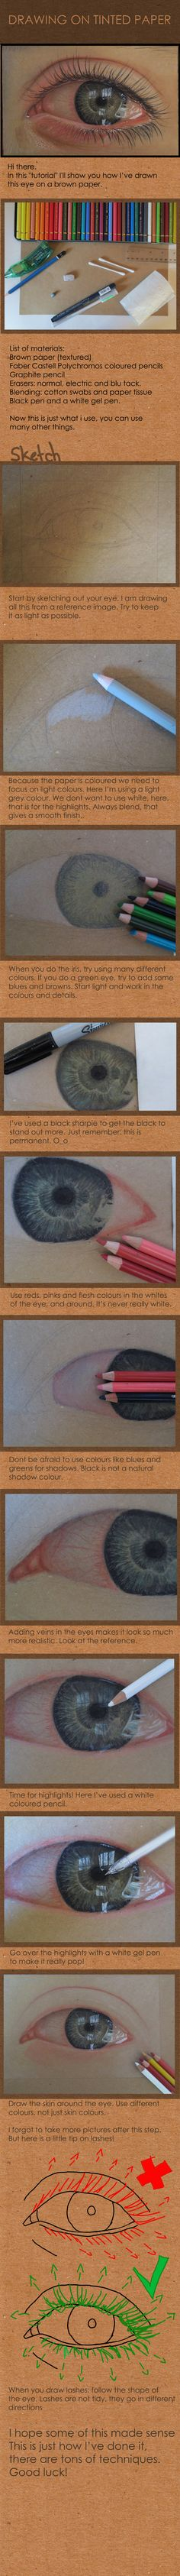 Drawing on tinted paper: Eye by *acjub on deviantART